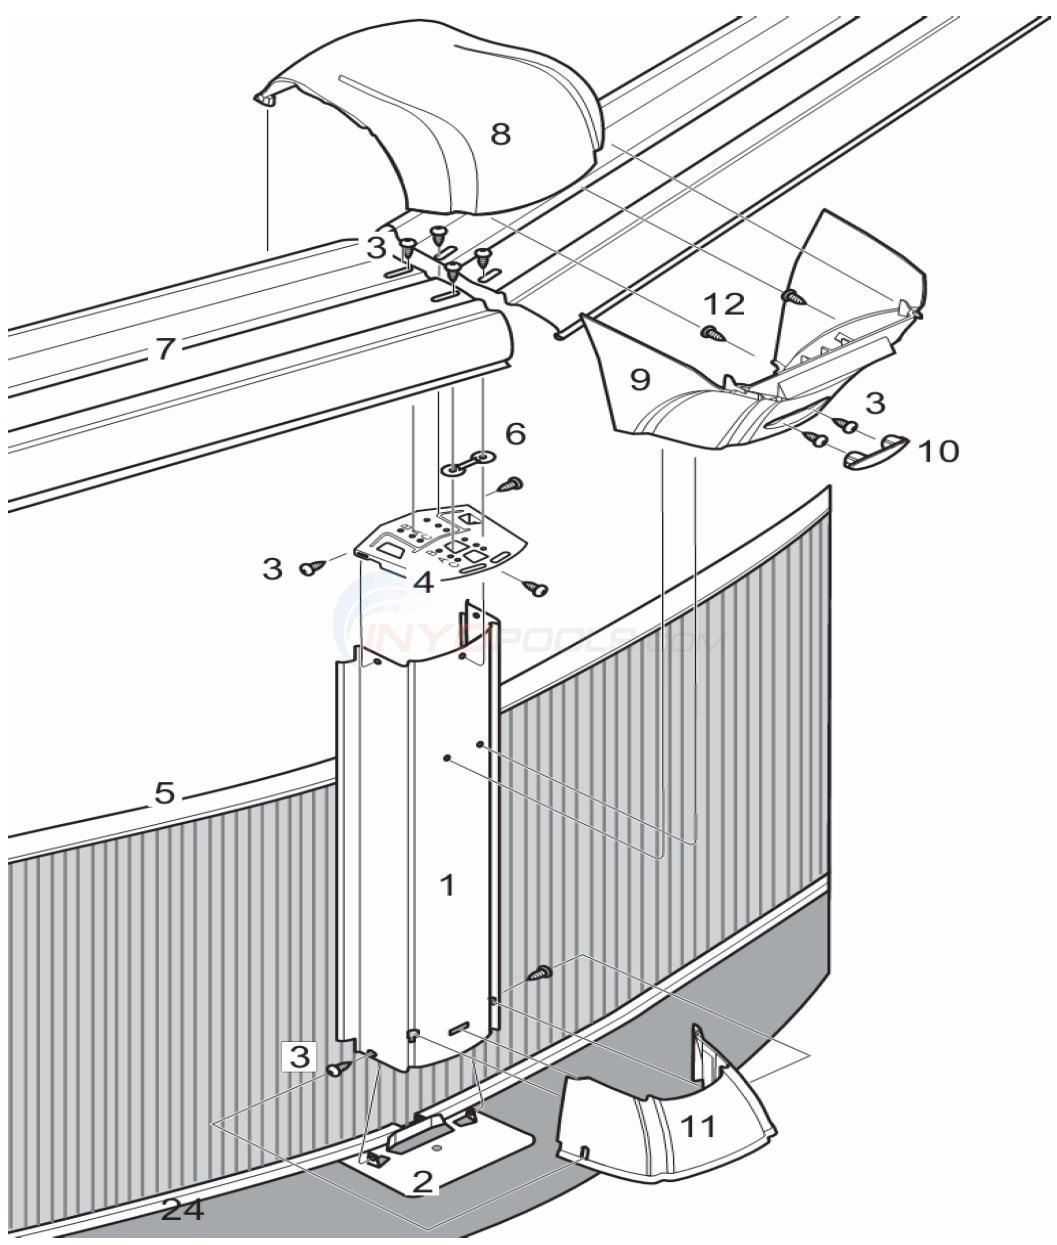 "Belize 24' Round 52"" Wall (Steel Top Rail, Steel Upright) Diagram"